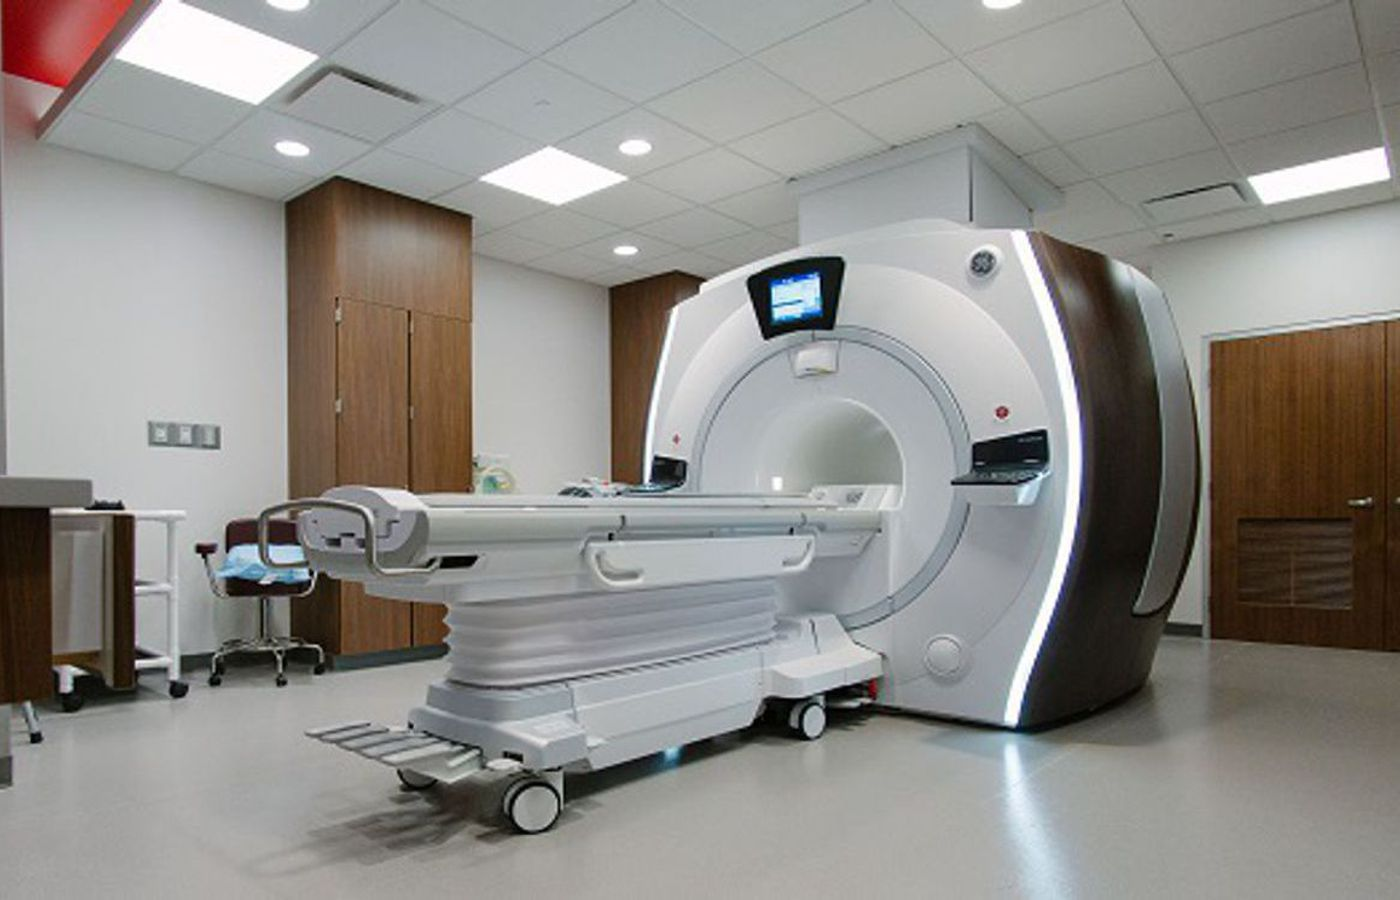 ../ProductImg/hospital-interiors-1400x900.jpg